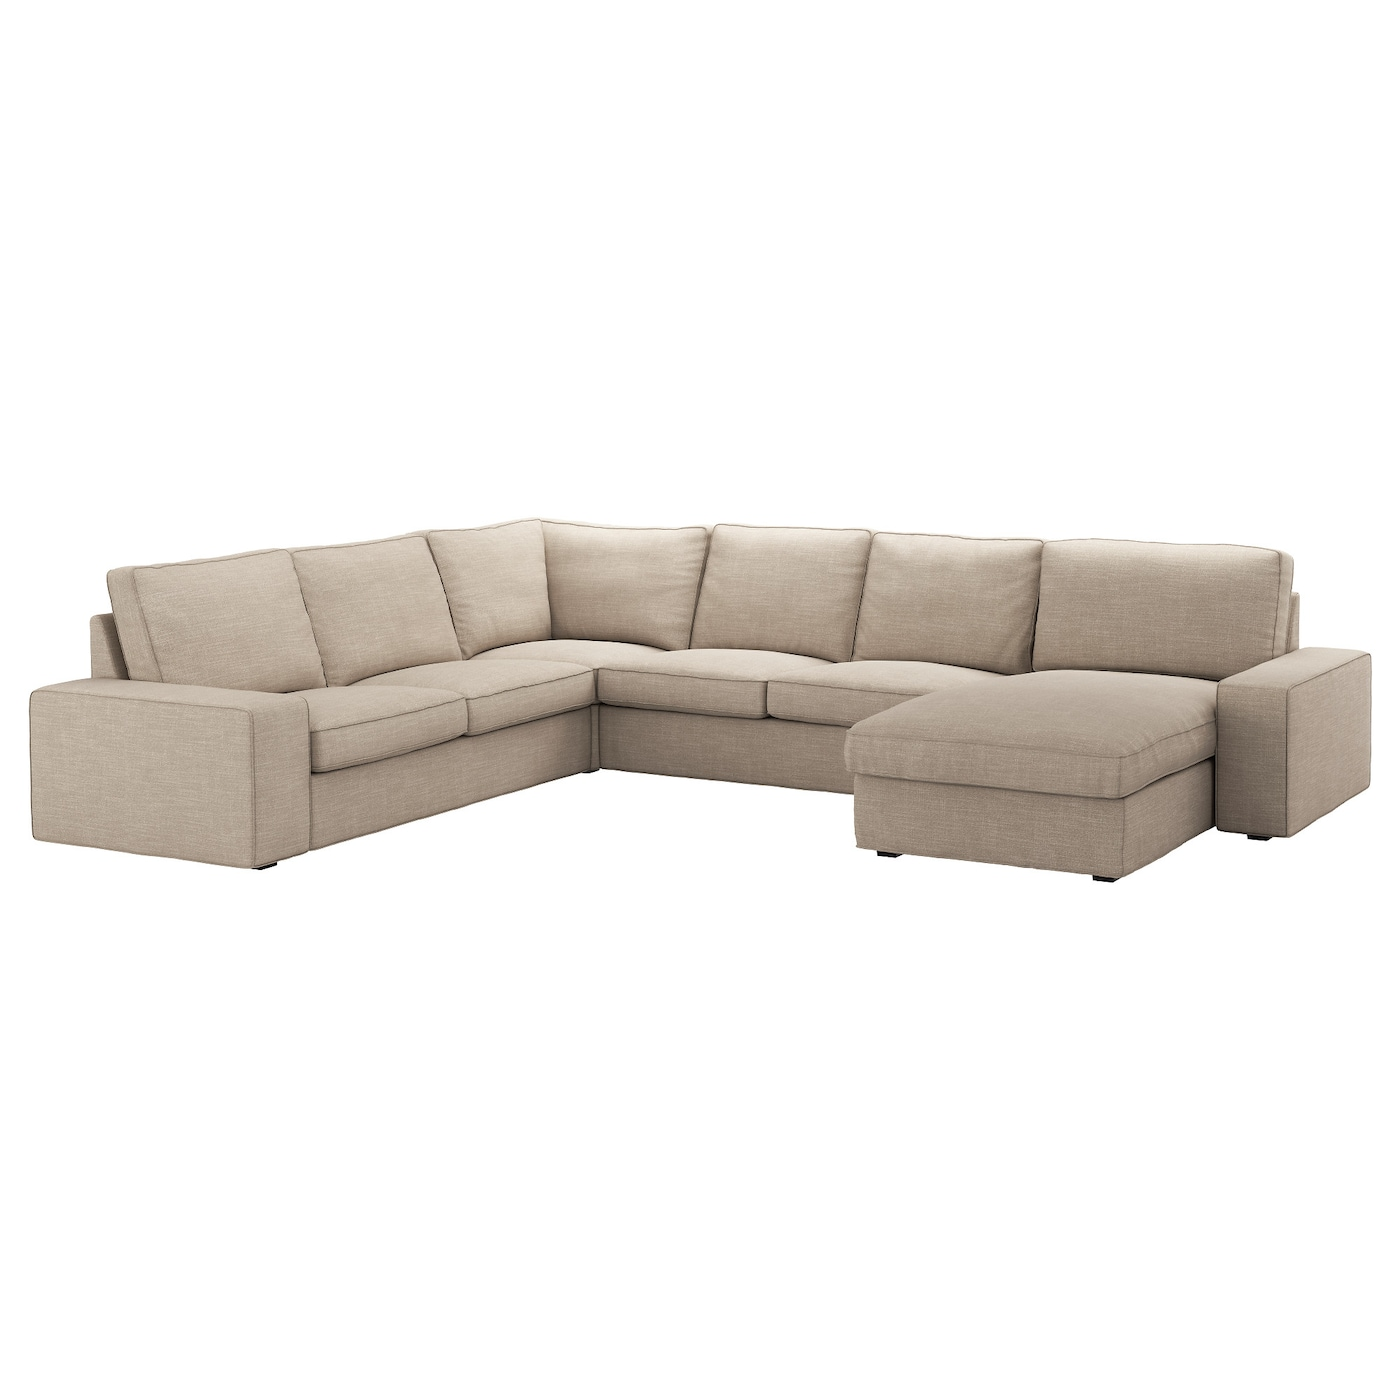 kivik corner sofa 2 2 with chaise longue hillared beige ikea. Black Bedroom Furniture Sets. Home Design Ideas